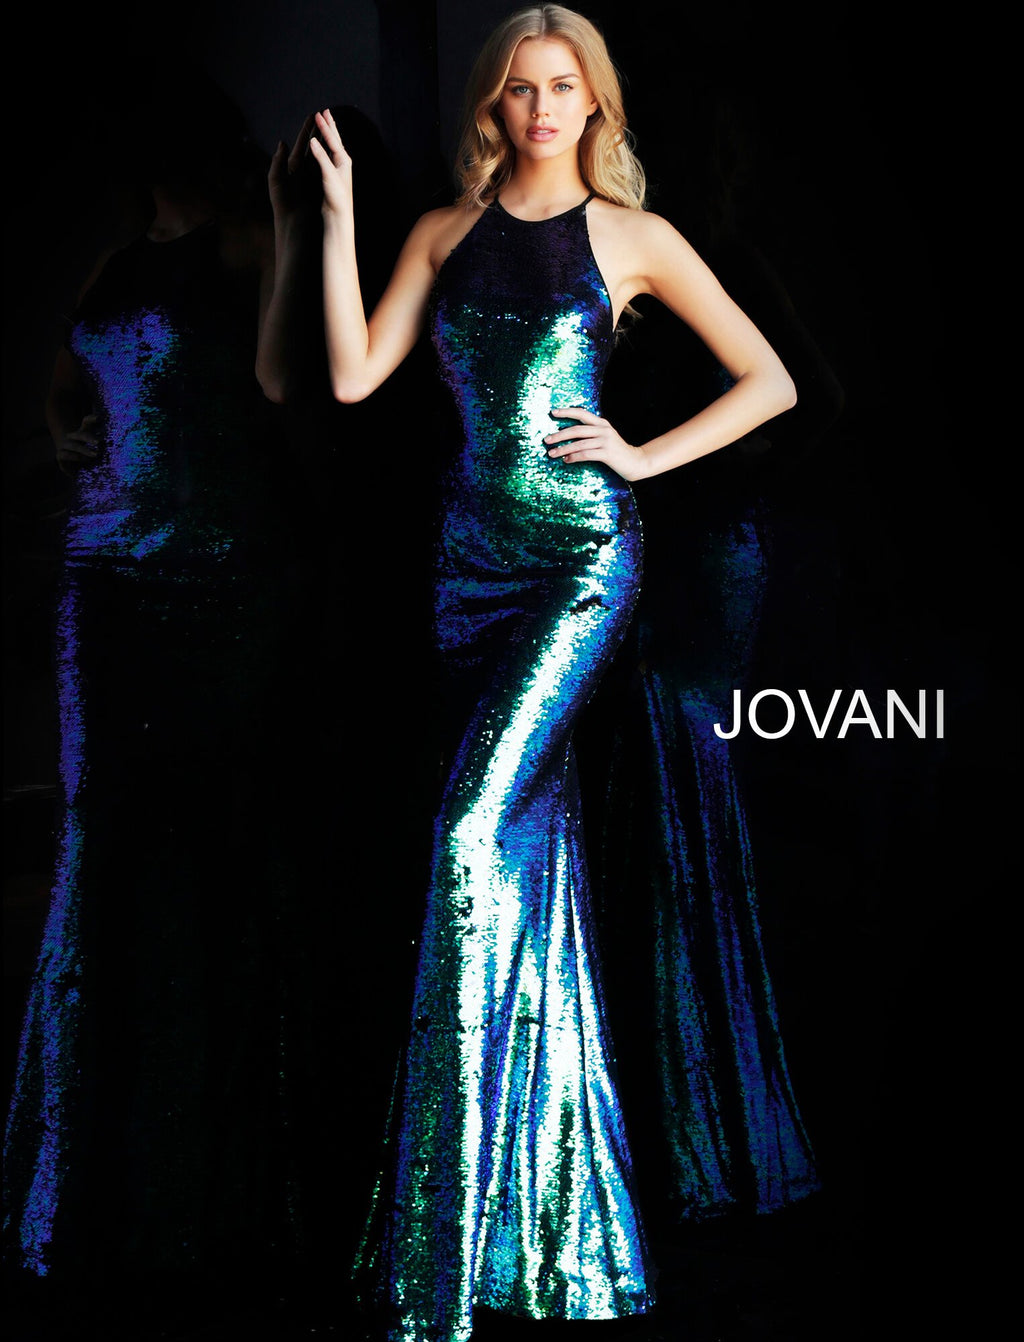 Jovani Multi Sequin Fitted Prom Dress